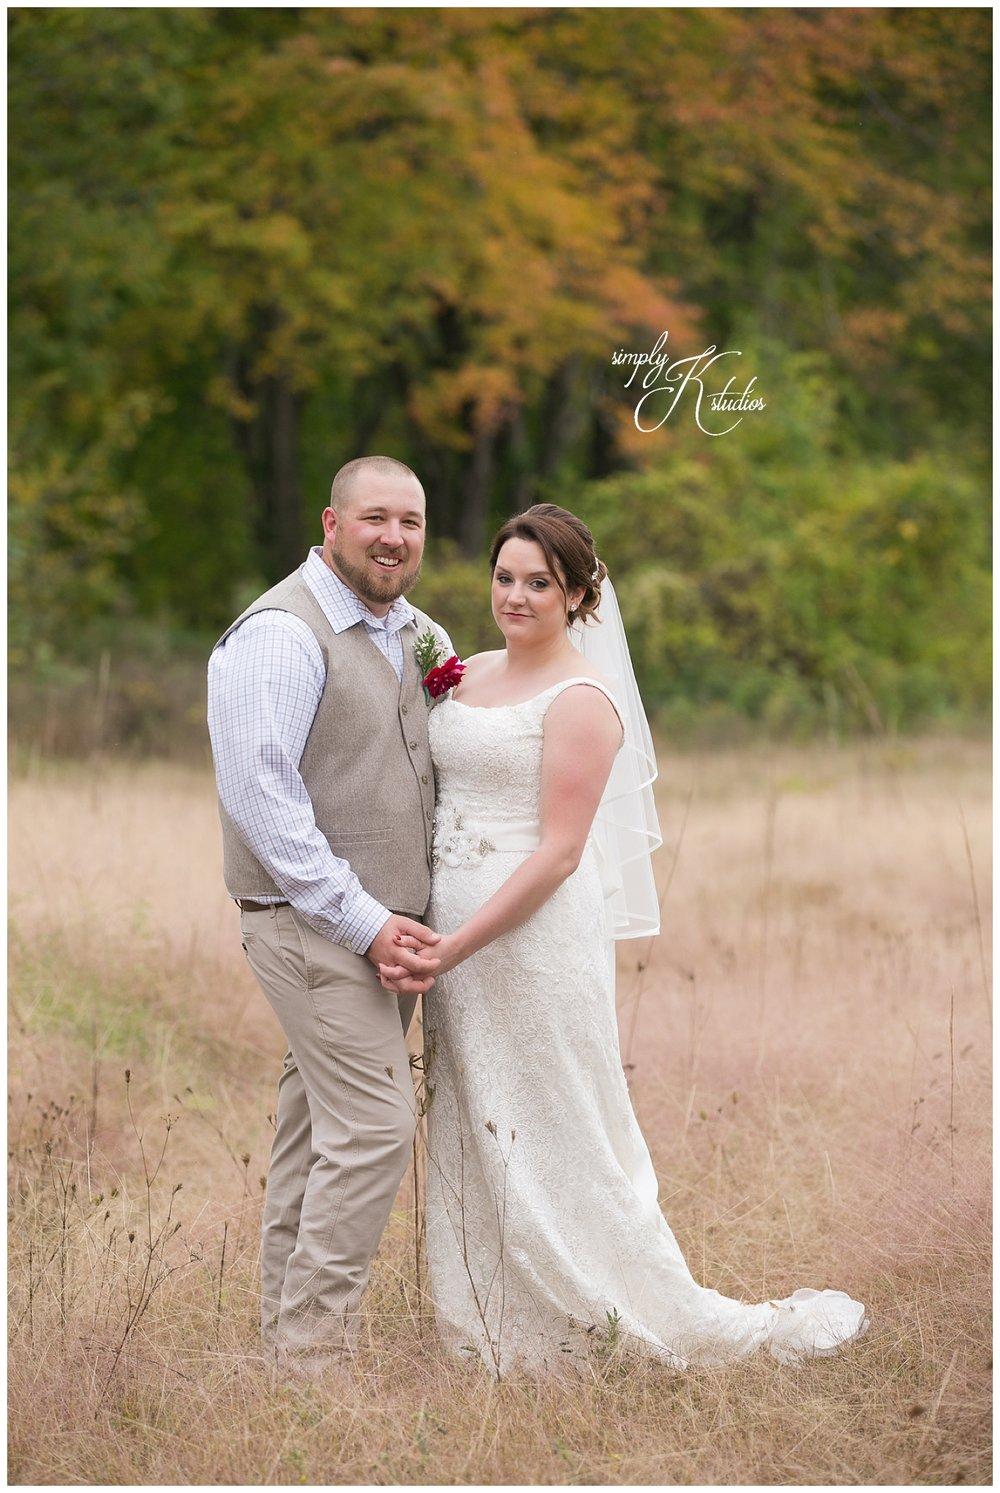 Fall Weddings at Vitos on the Farm.jpg